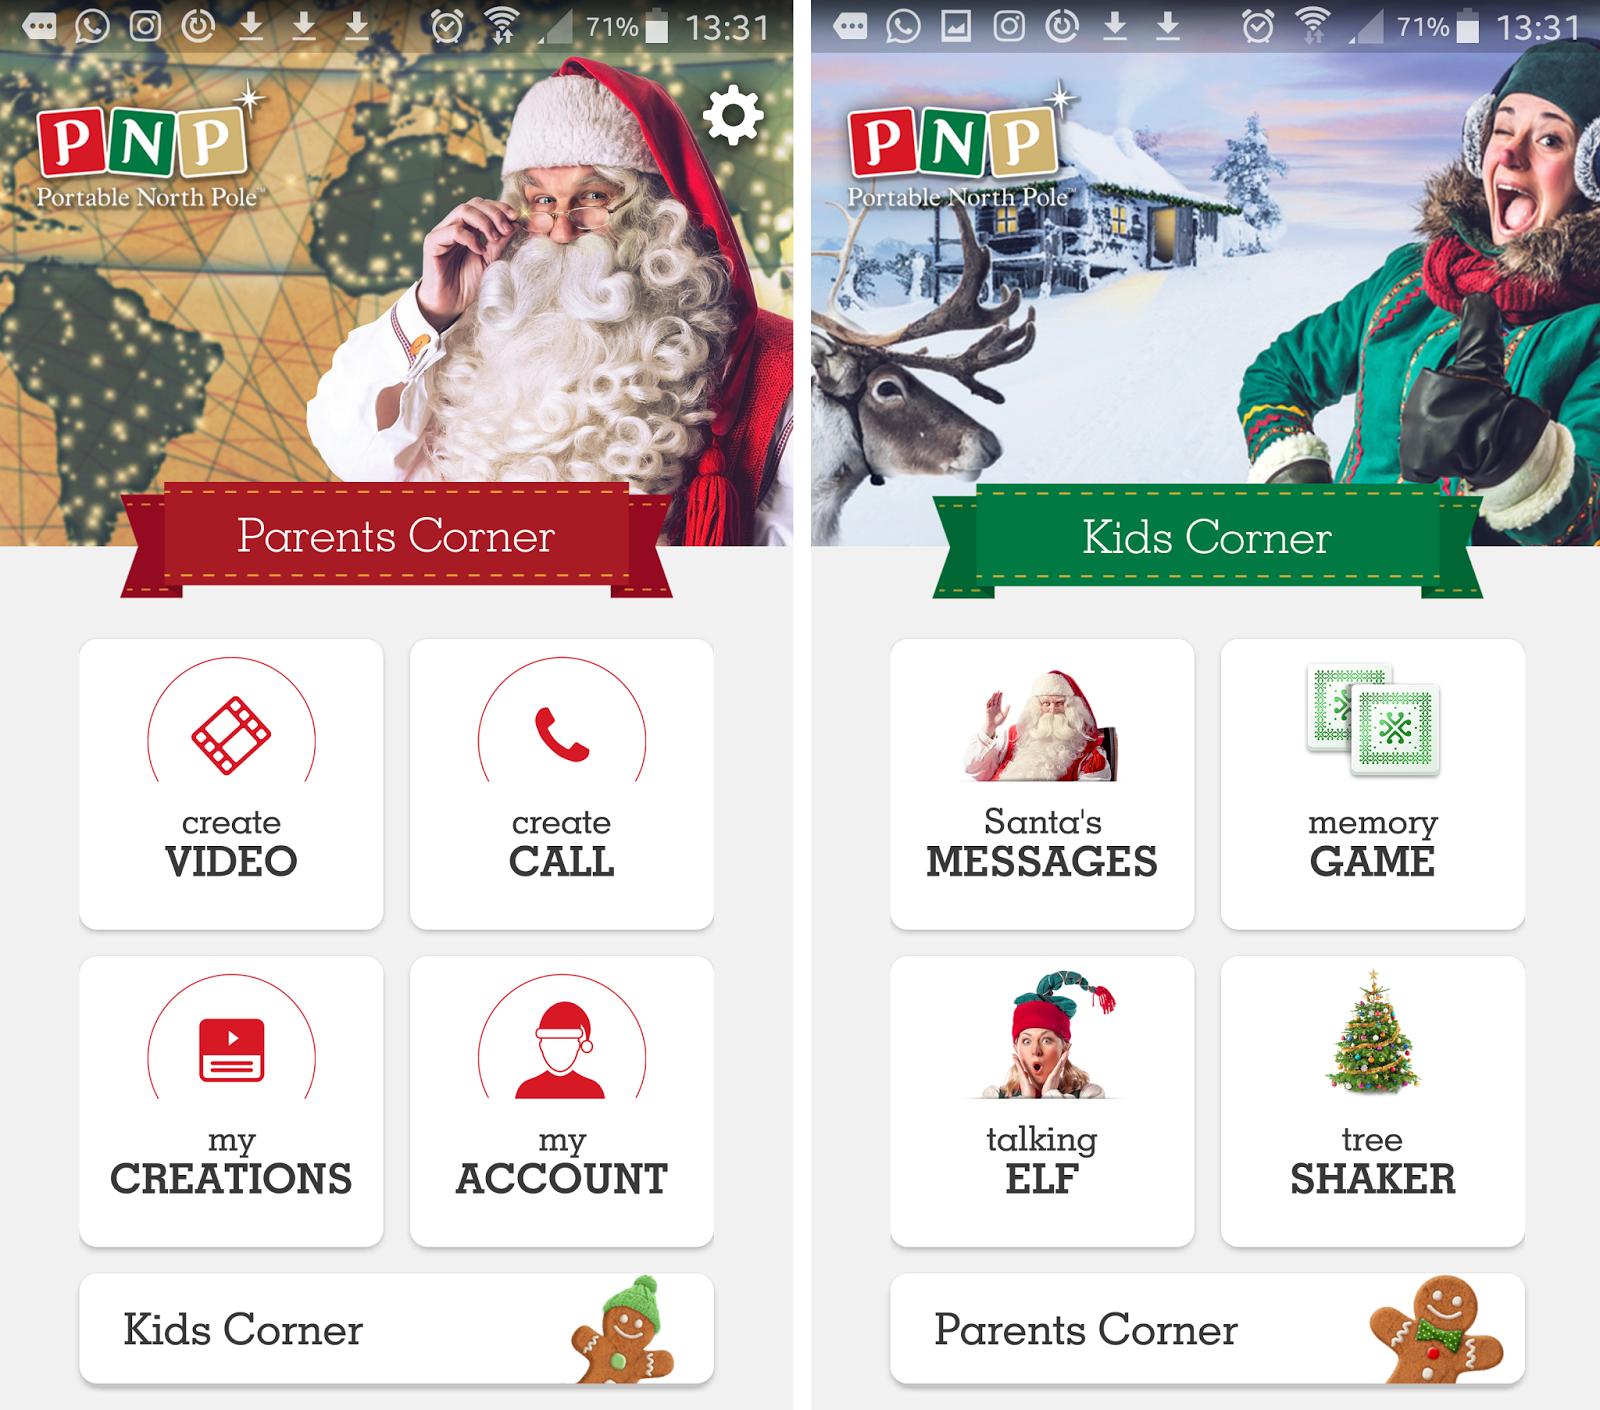 Make Christmas special, Portable North Pole, Message from Santa